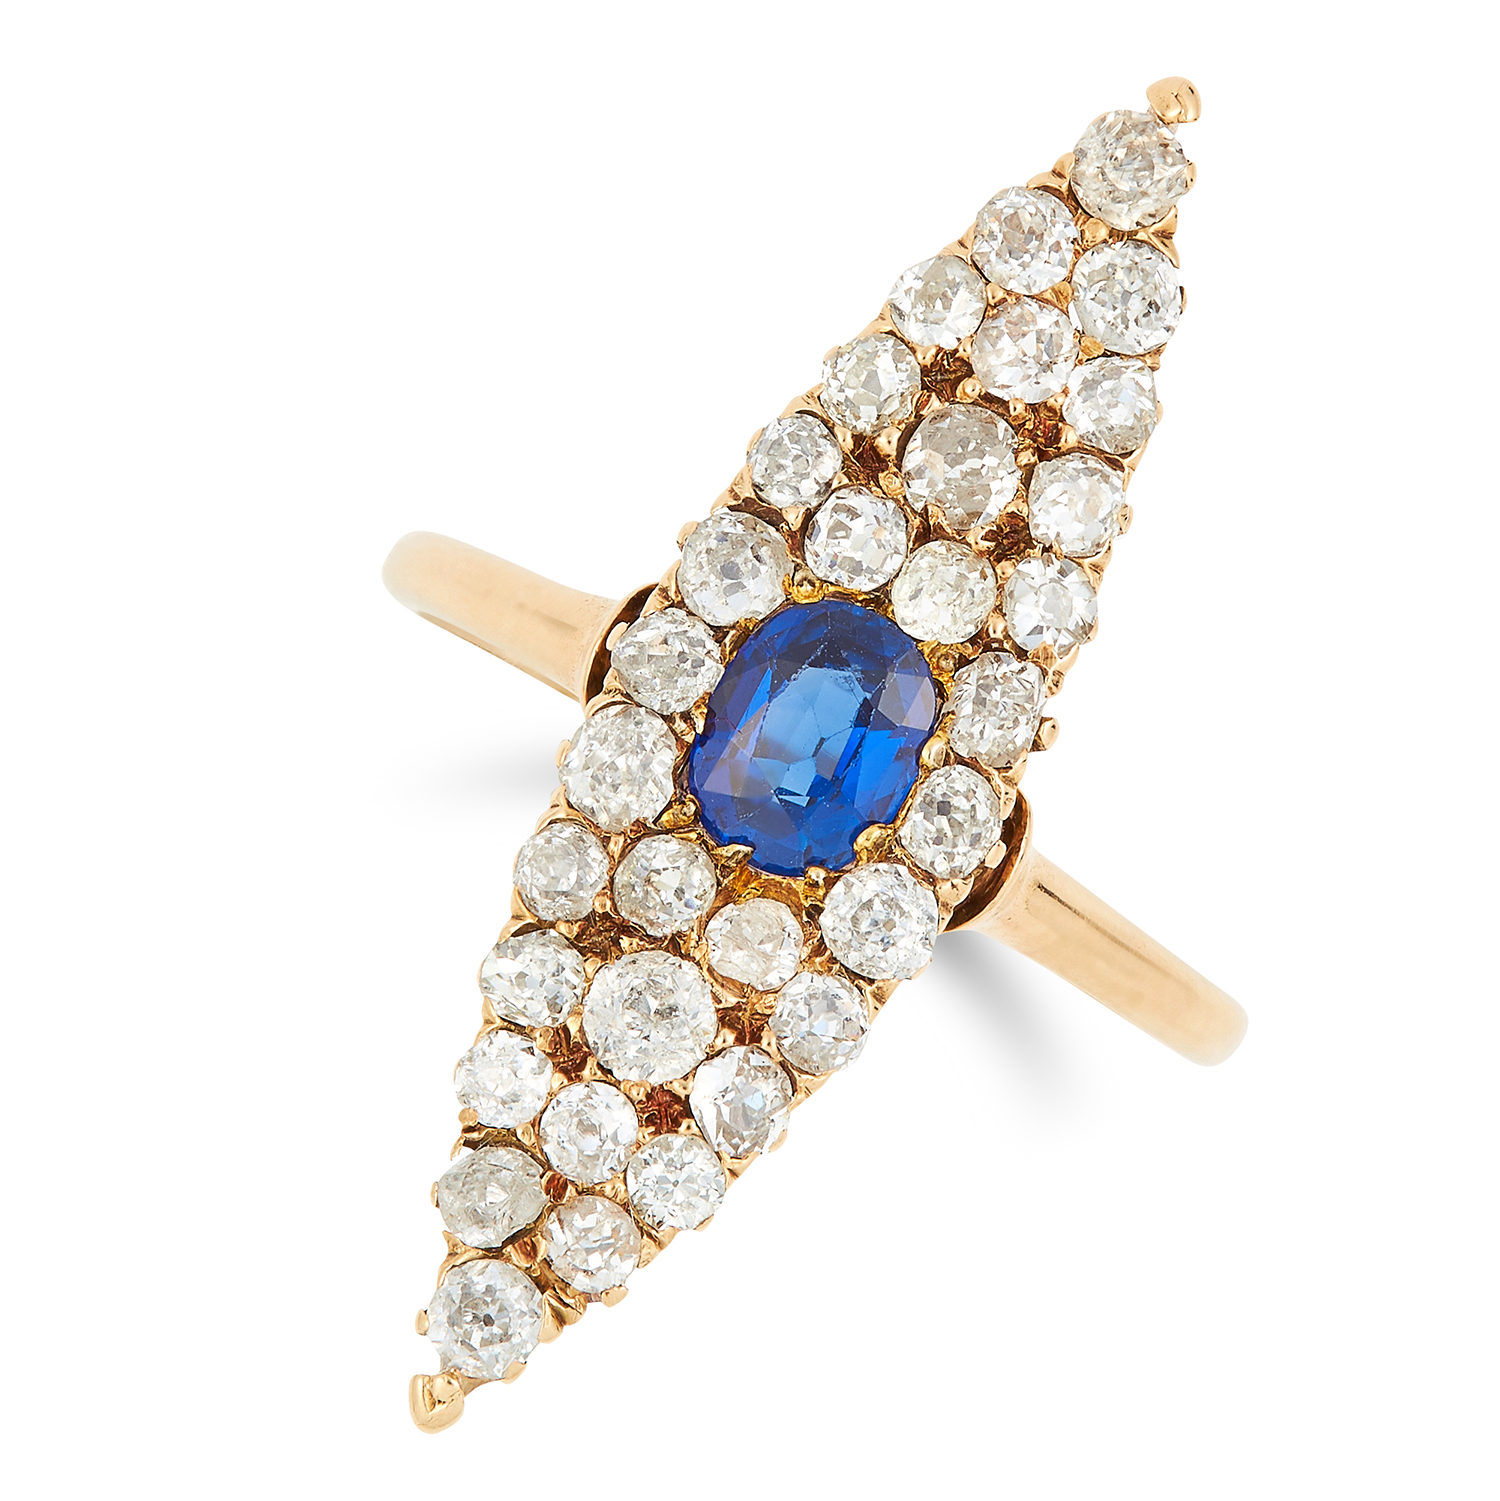 Los 53 - ANTIQUE SAPPHIRE AND DIAMOND RING set with a cushion cut sapphire of 0.70 carats and old cut